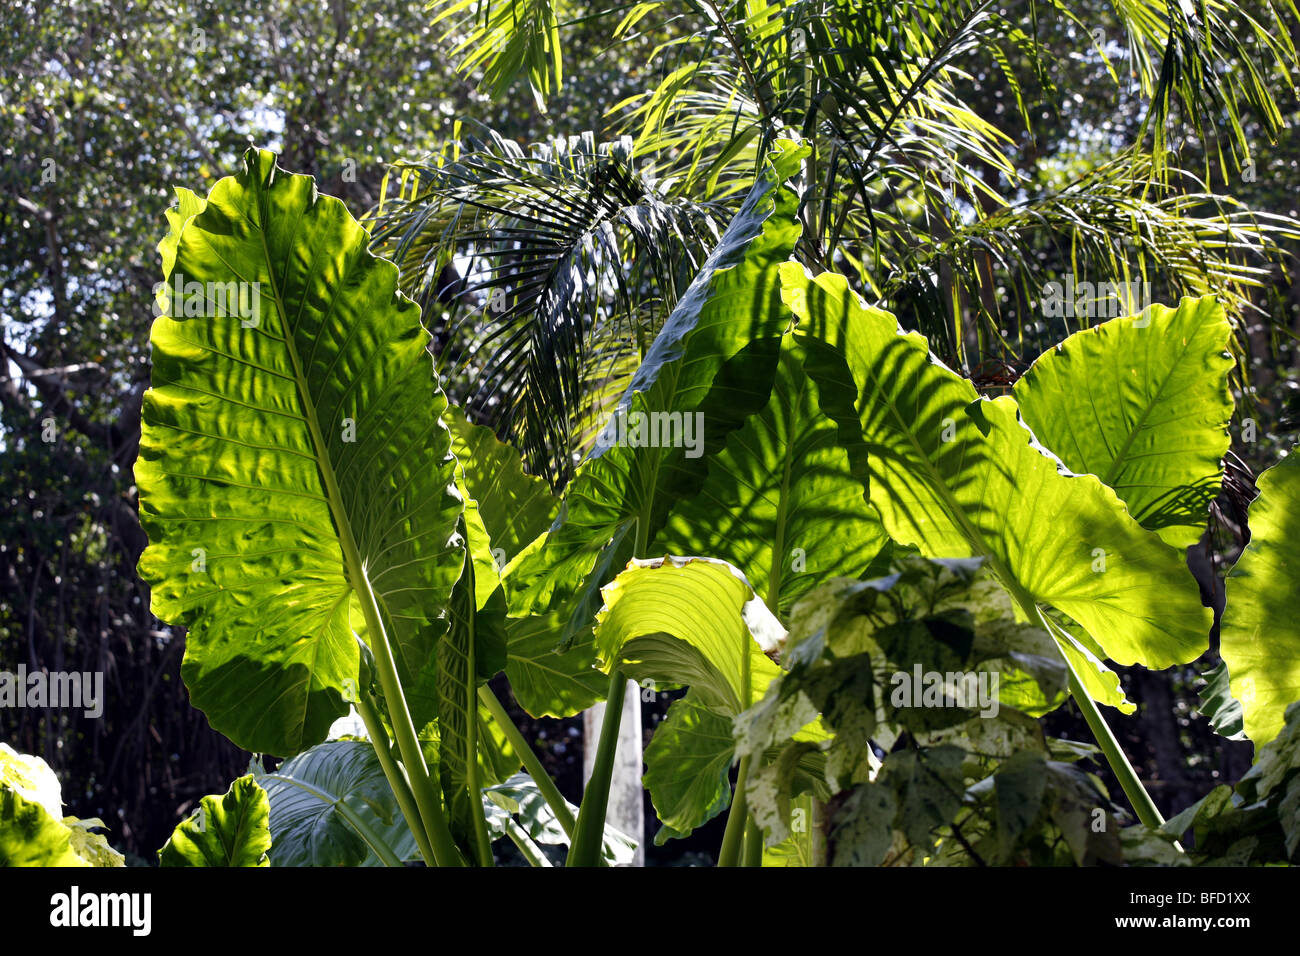 Tropical vegetation and leaves Stock Photo